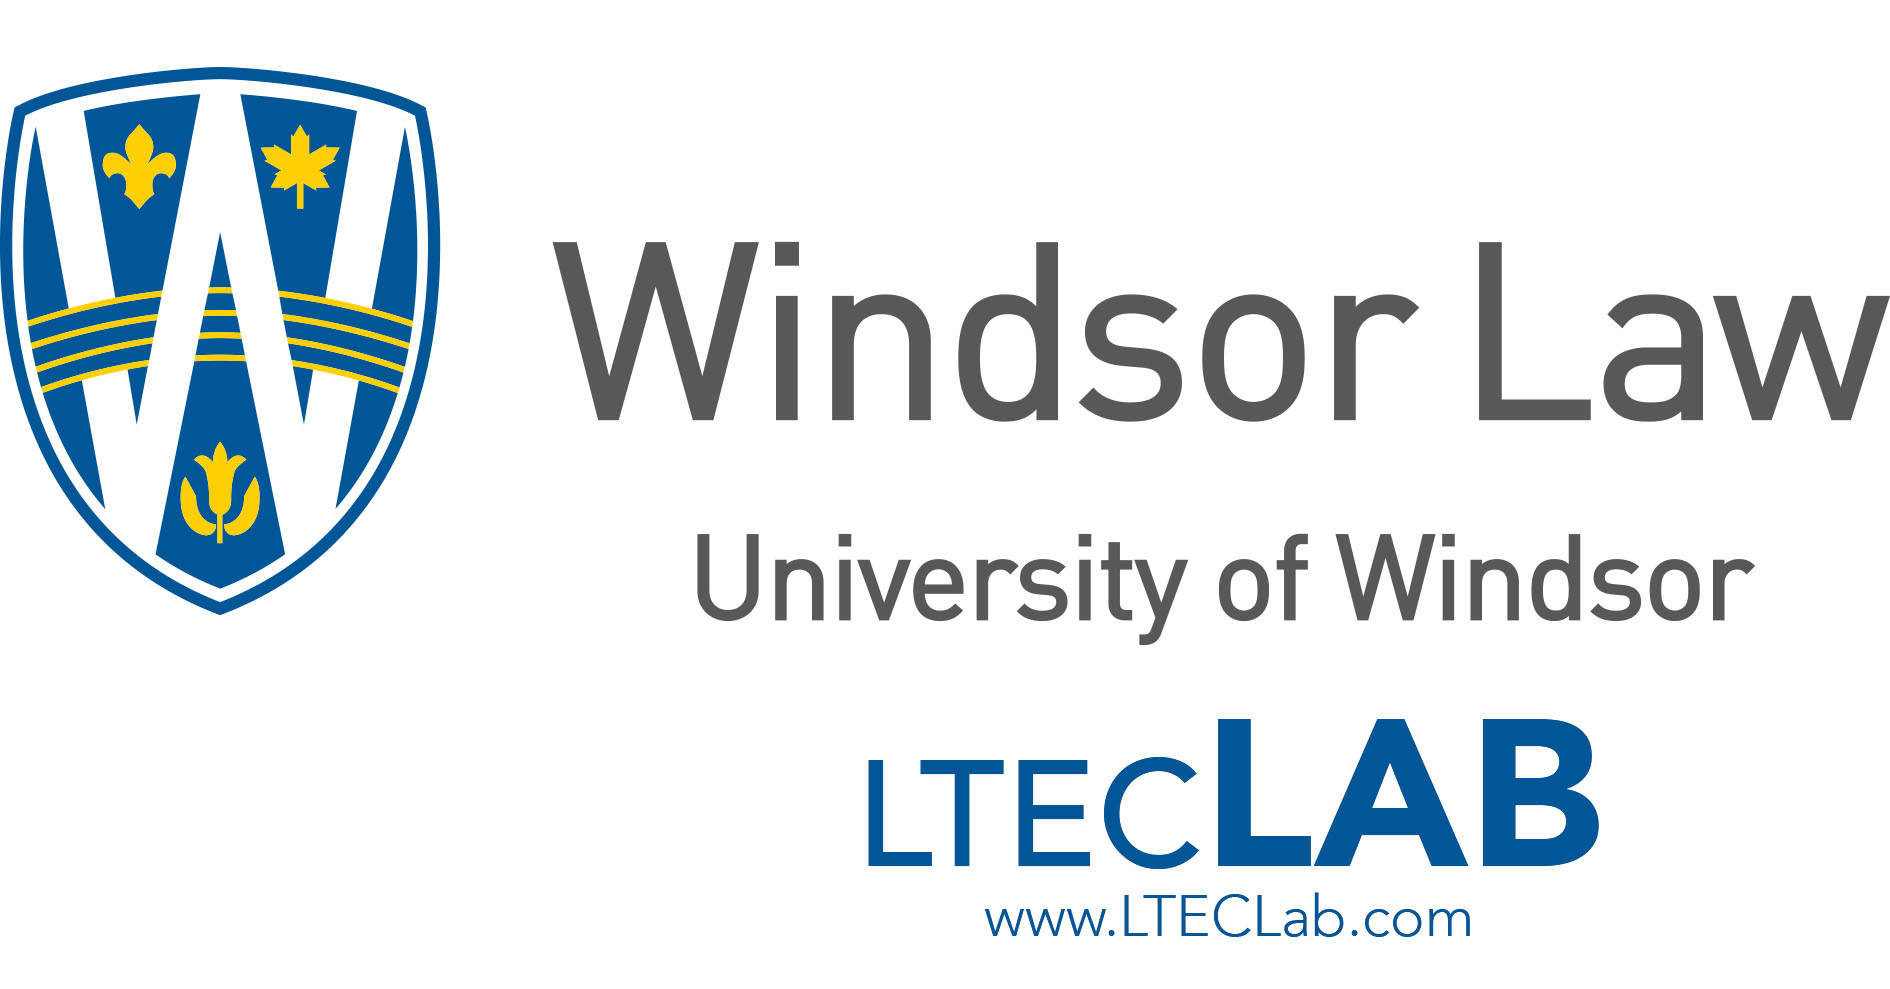 Roundtable on E-Commerce, Algorithms, Big Data, and Consumer Protection- Hosted by Windsor Law LTEC Lab @ University of Windsor, Faculty of Law